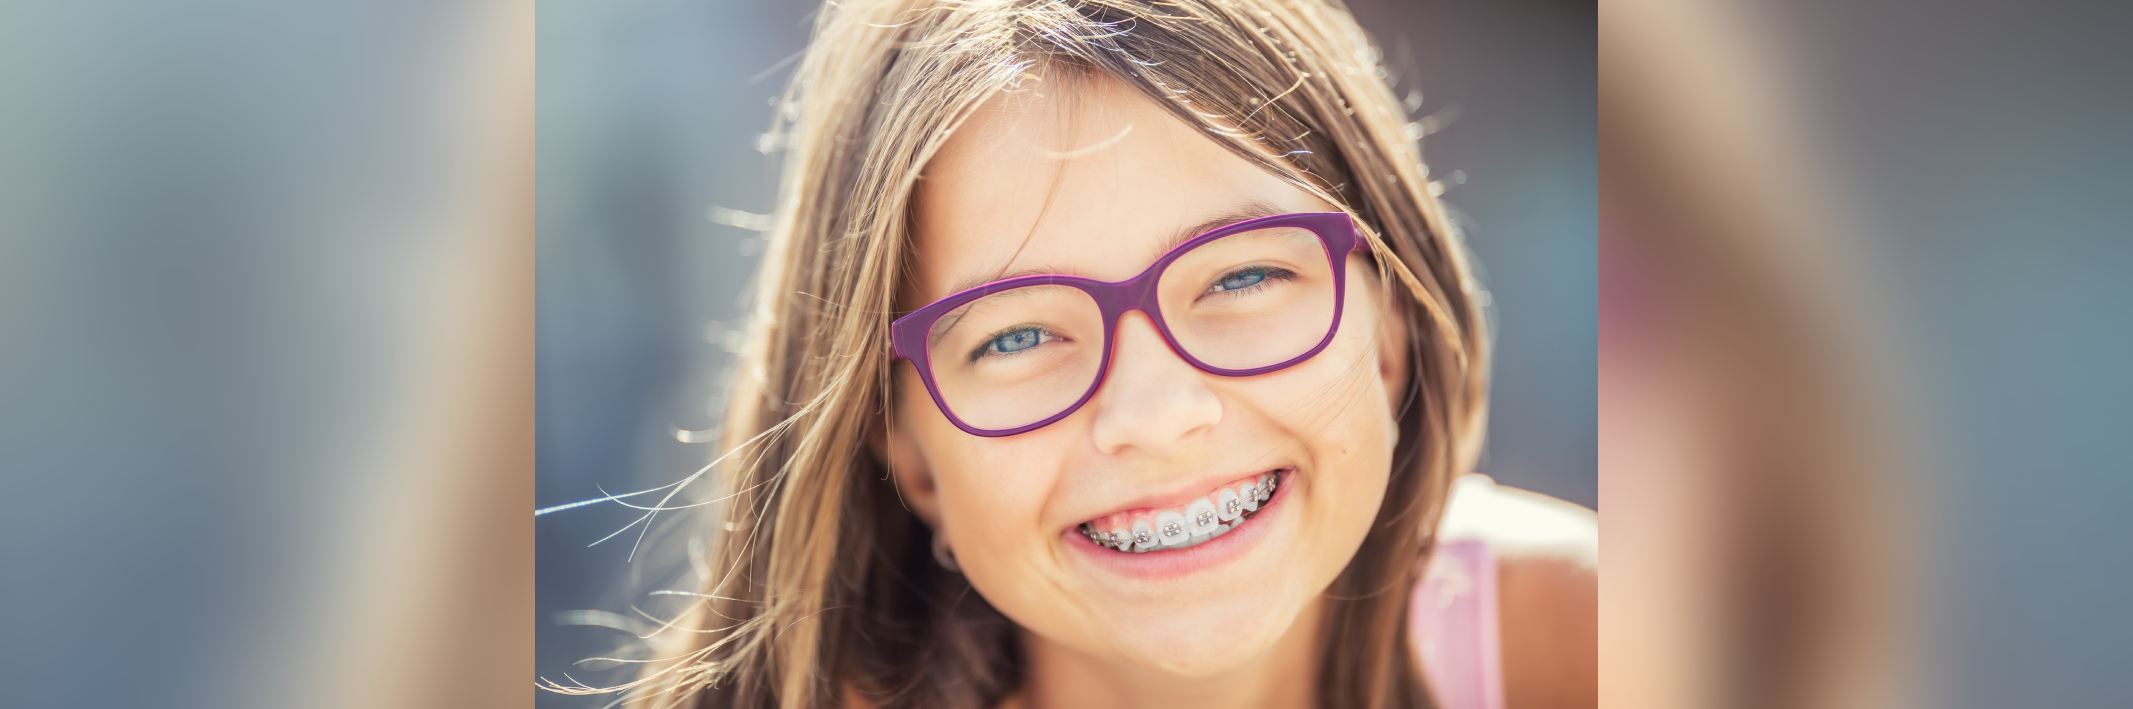 Caring For Teeth While Wearing Braces